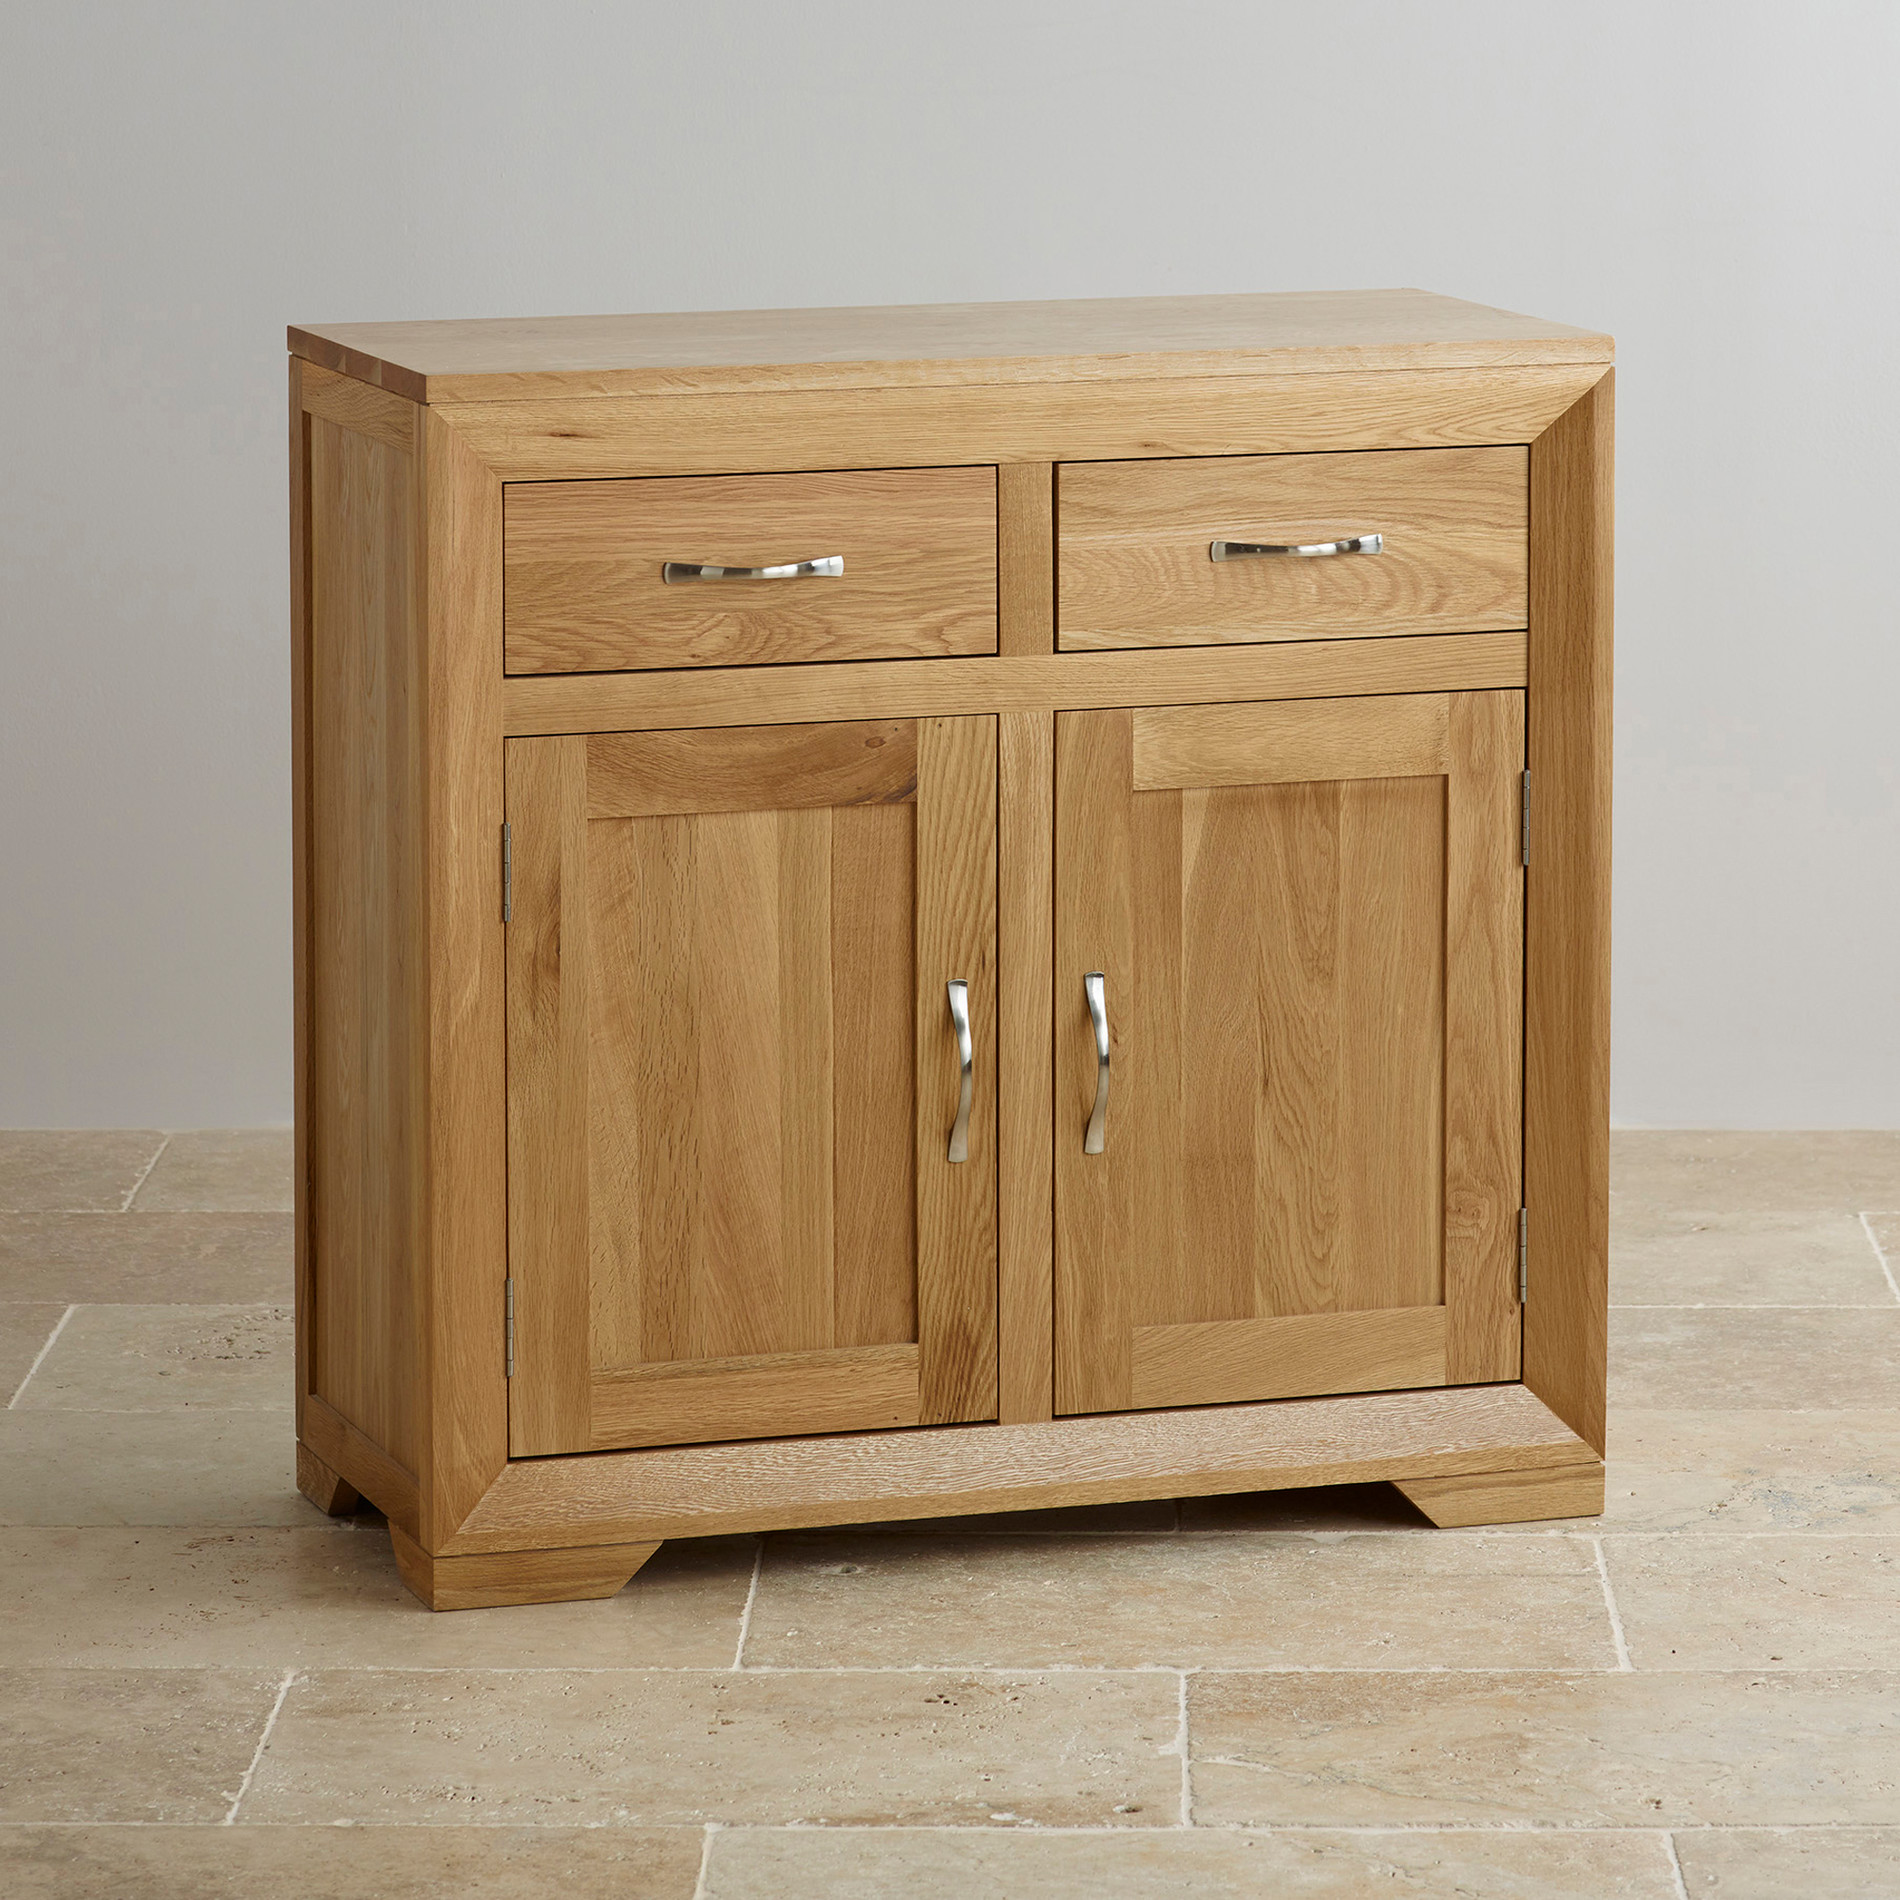 Oak Dining Room Furniture Bevel Small Sideboard In Natural Solid Oak Oak Furniture